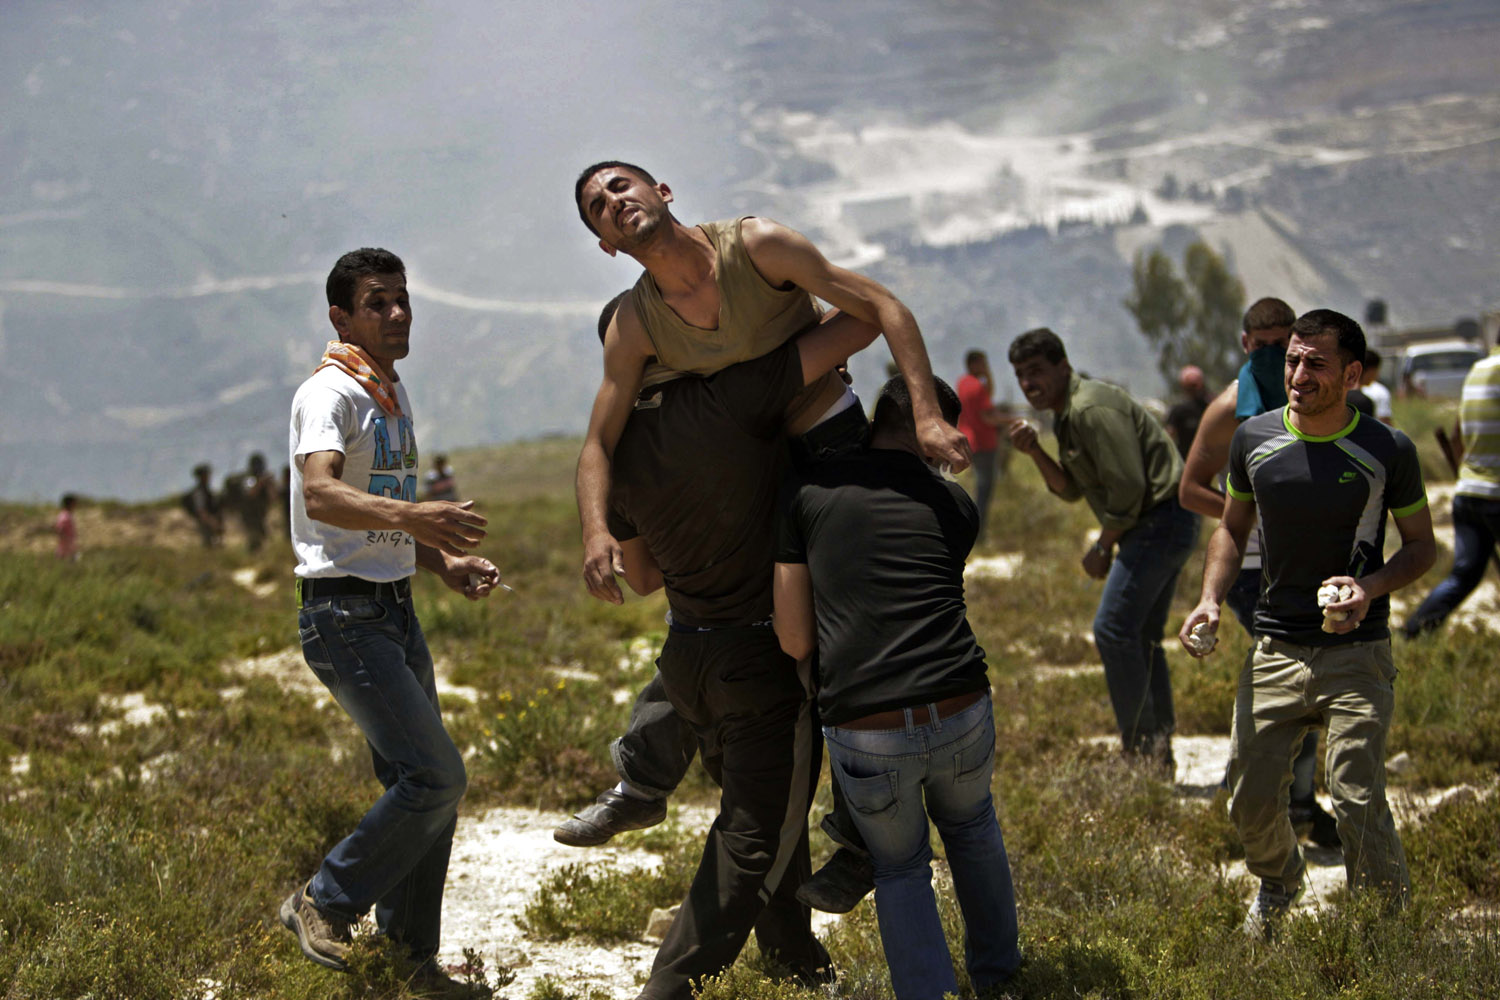 April 30, 2013. Palestinians help a wounded man during clashes with Jewish settlers near the Jewish settlement of Yitzhar, near Nablus.